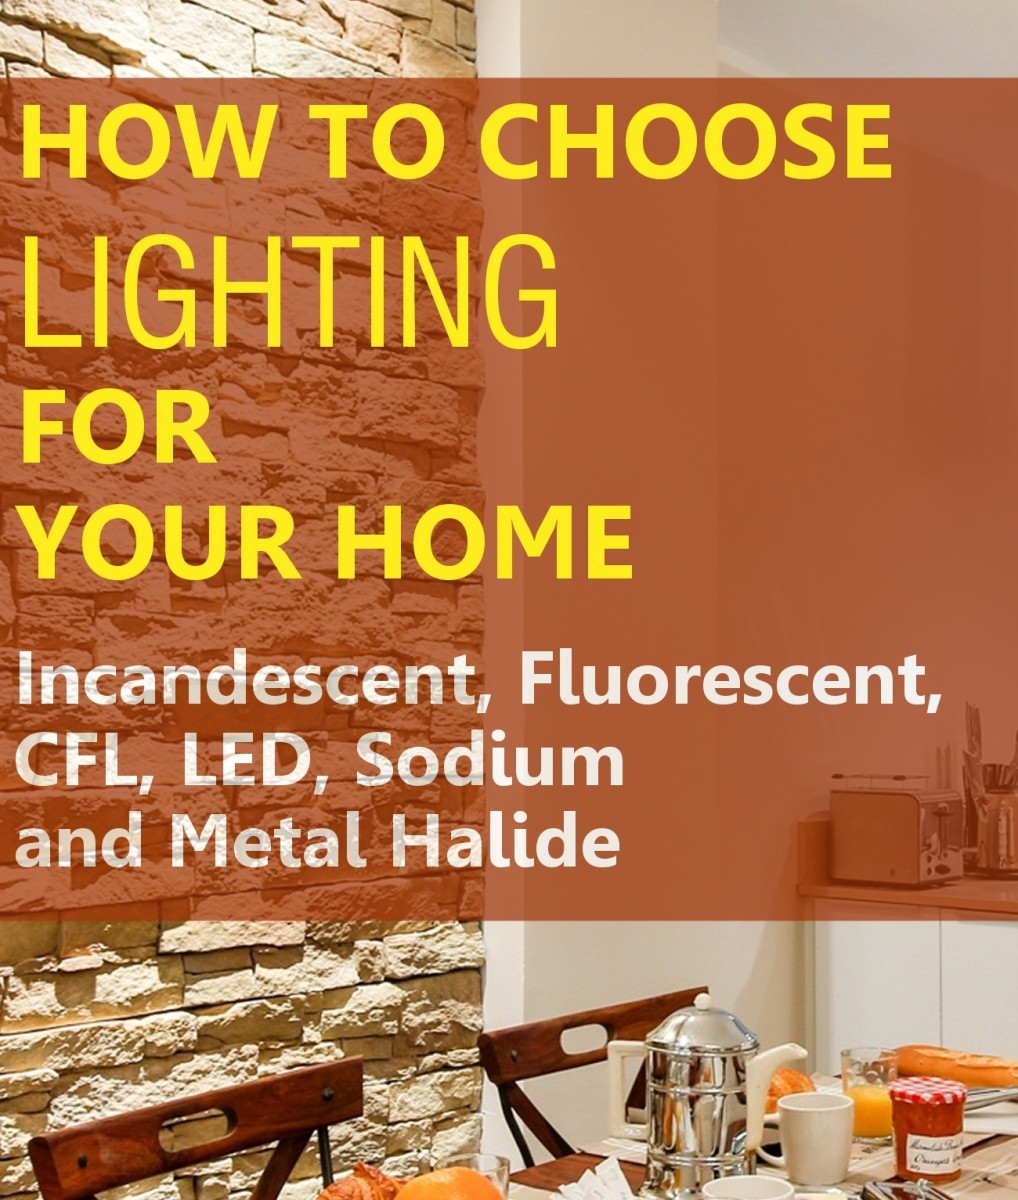 hight resolution of how to choose home lighting led fluorescent incandescent cfl sodium and metal halide